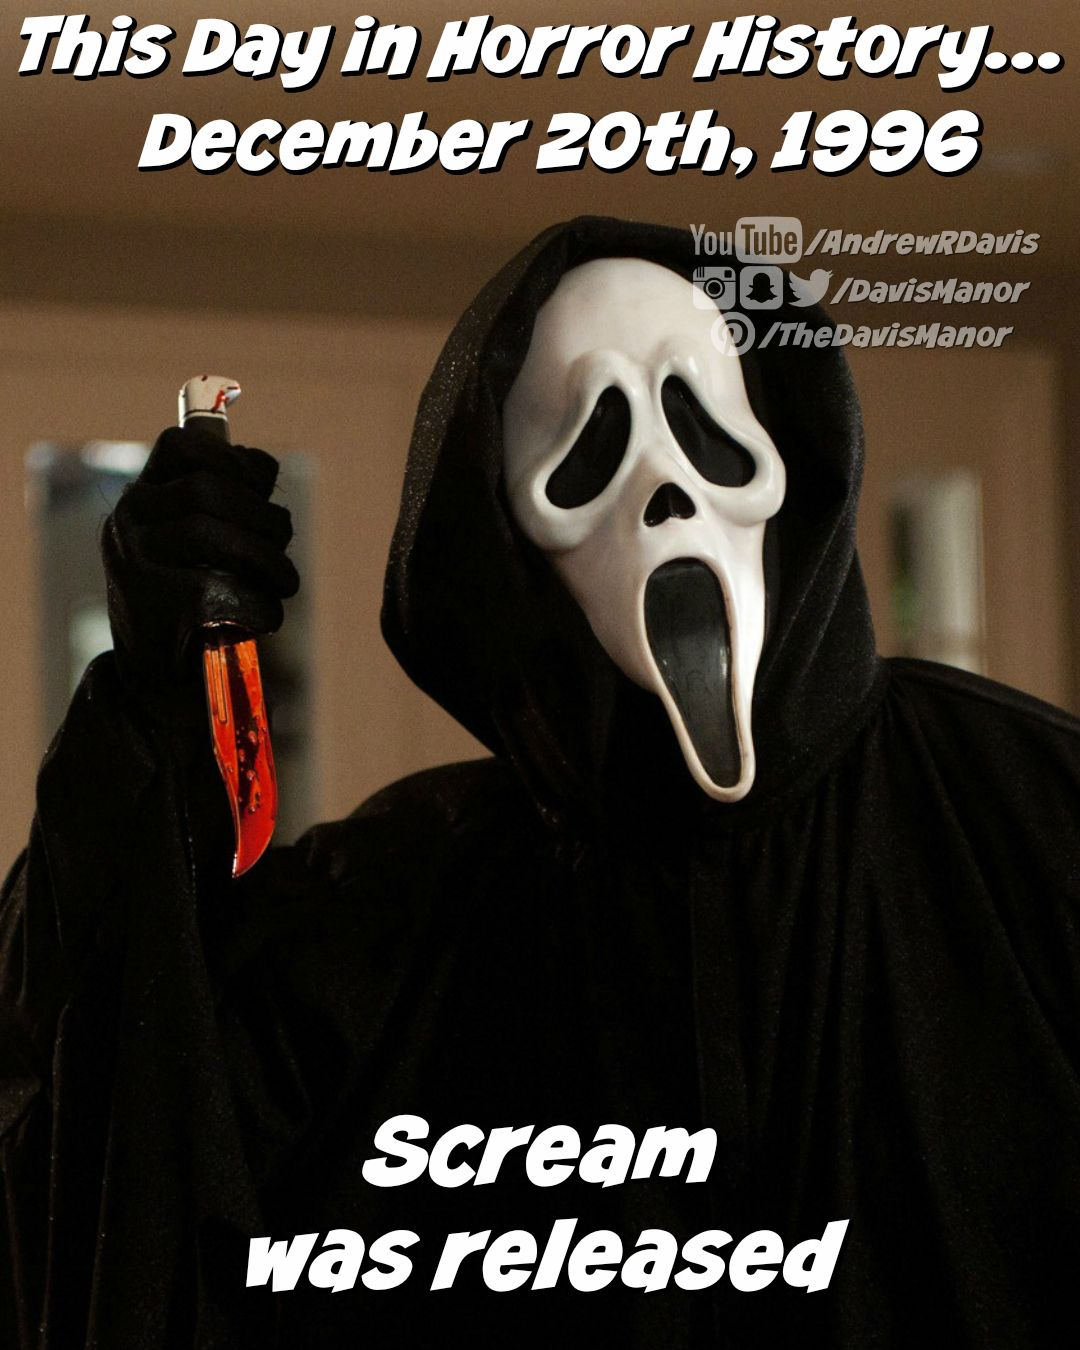 This Day in Horror History... December 20th, 1996 Scream